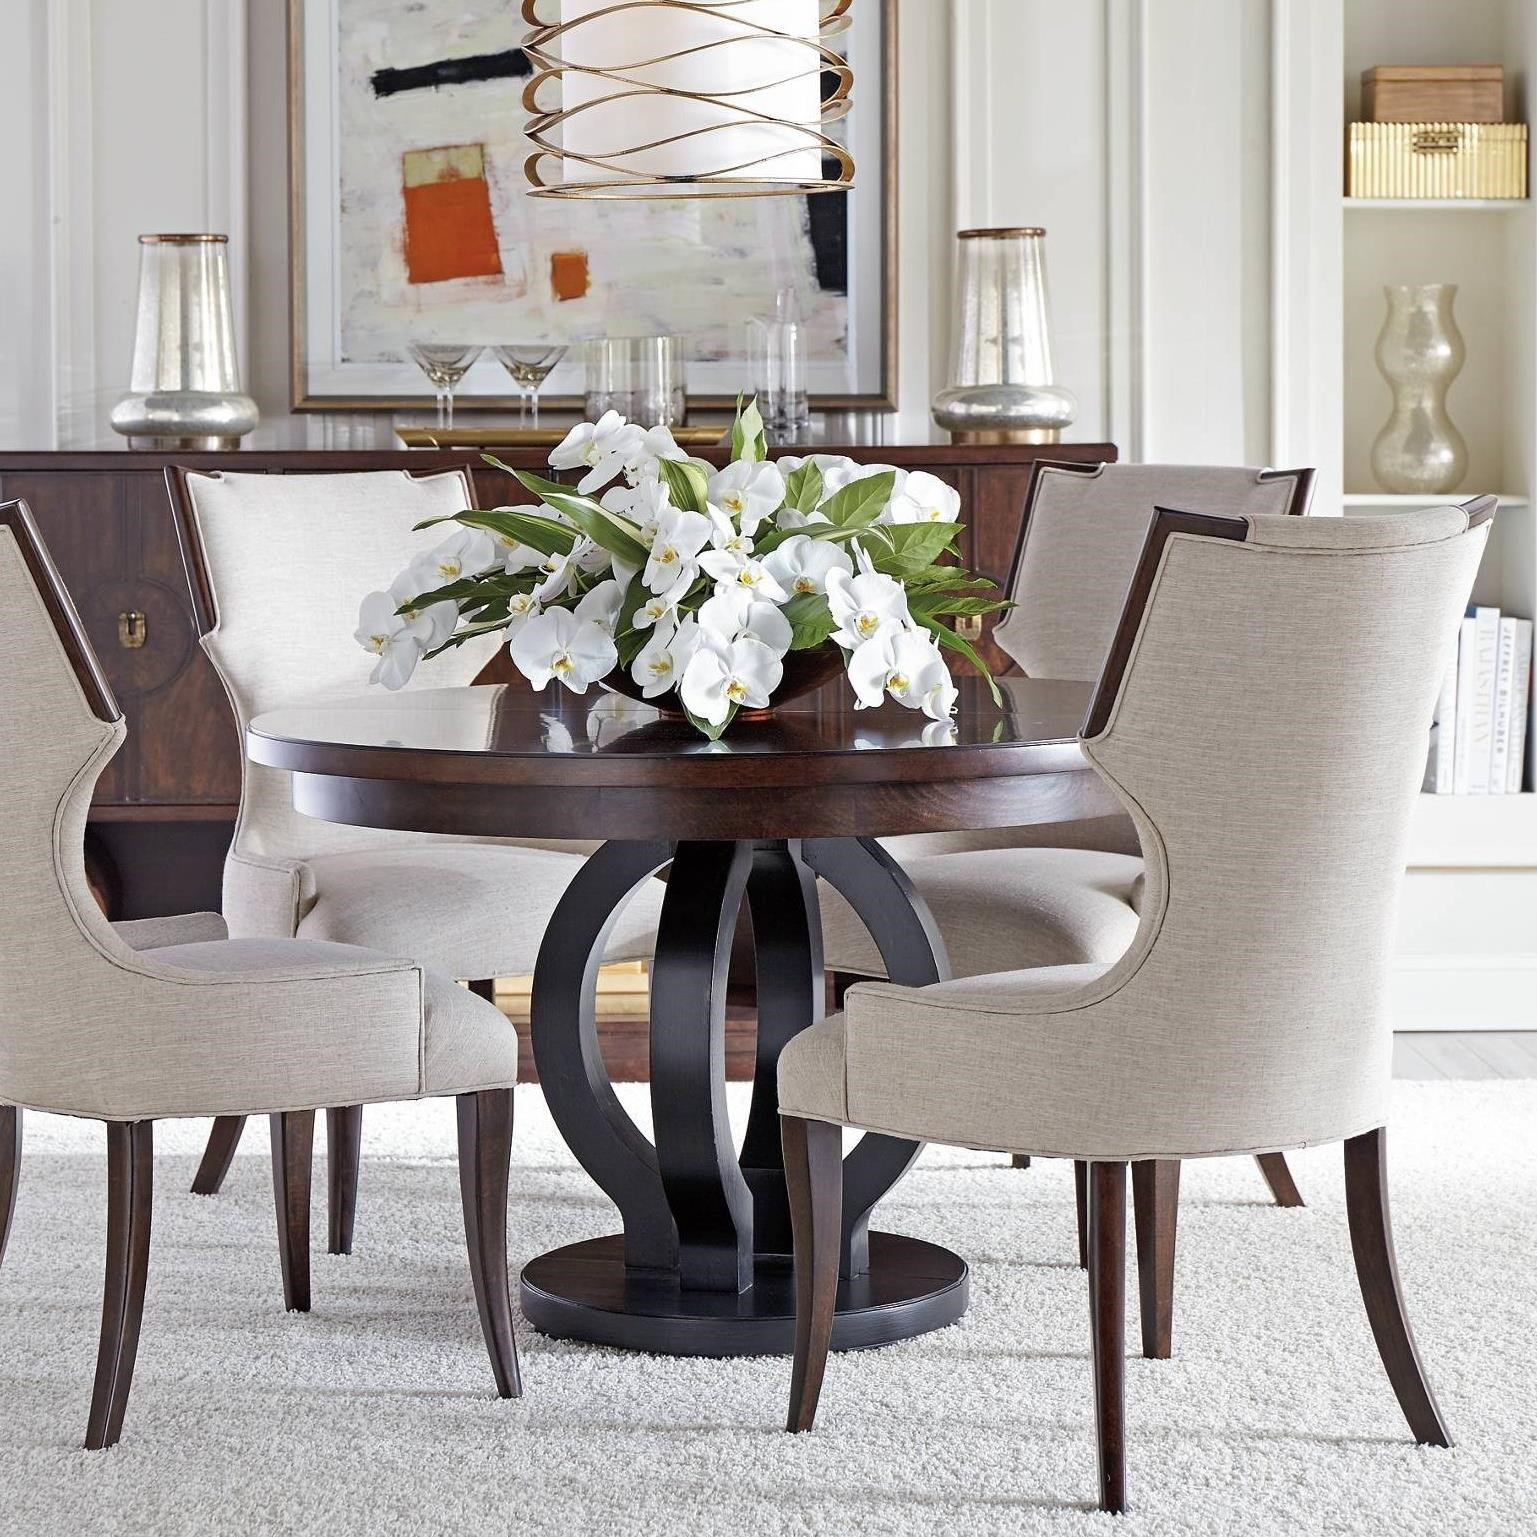 round dining room set. Stanley Furniture Virage5-Piece Round Dining Table Set Room D